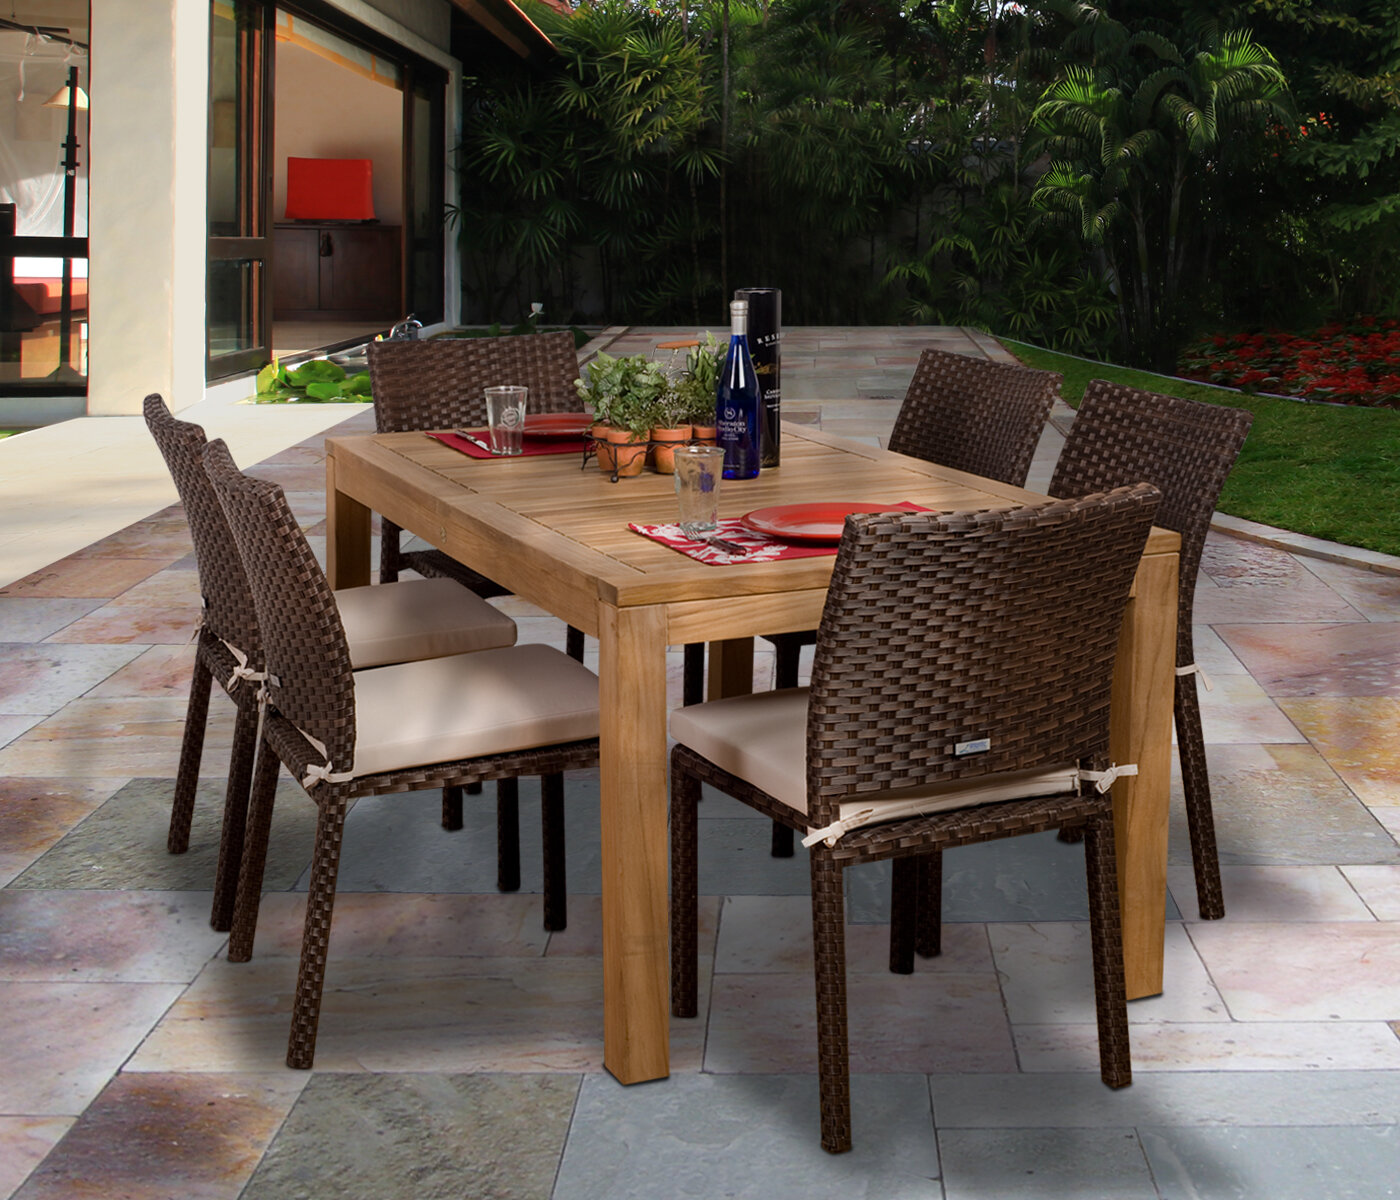 Beachcrest Home Arango 7 Piece Teak Dining Set With Cushions Reviews Wayfair